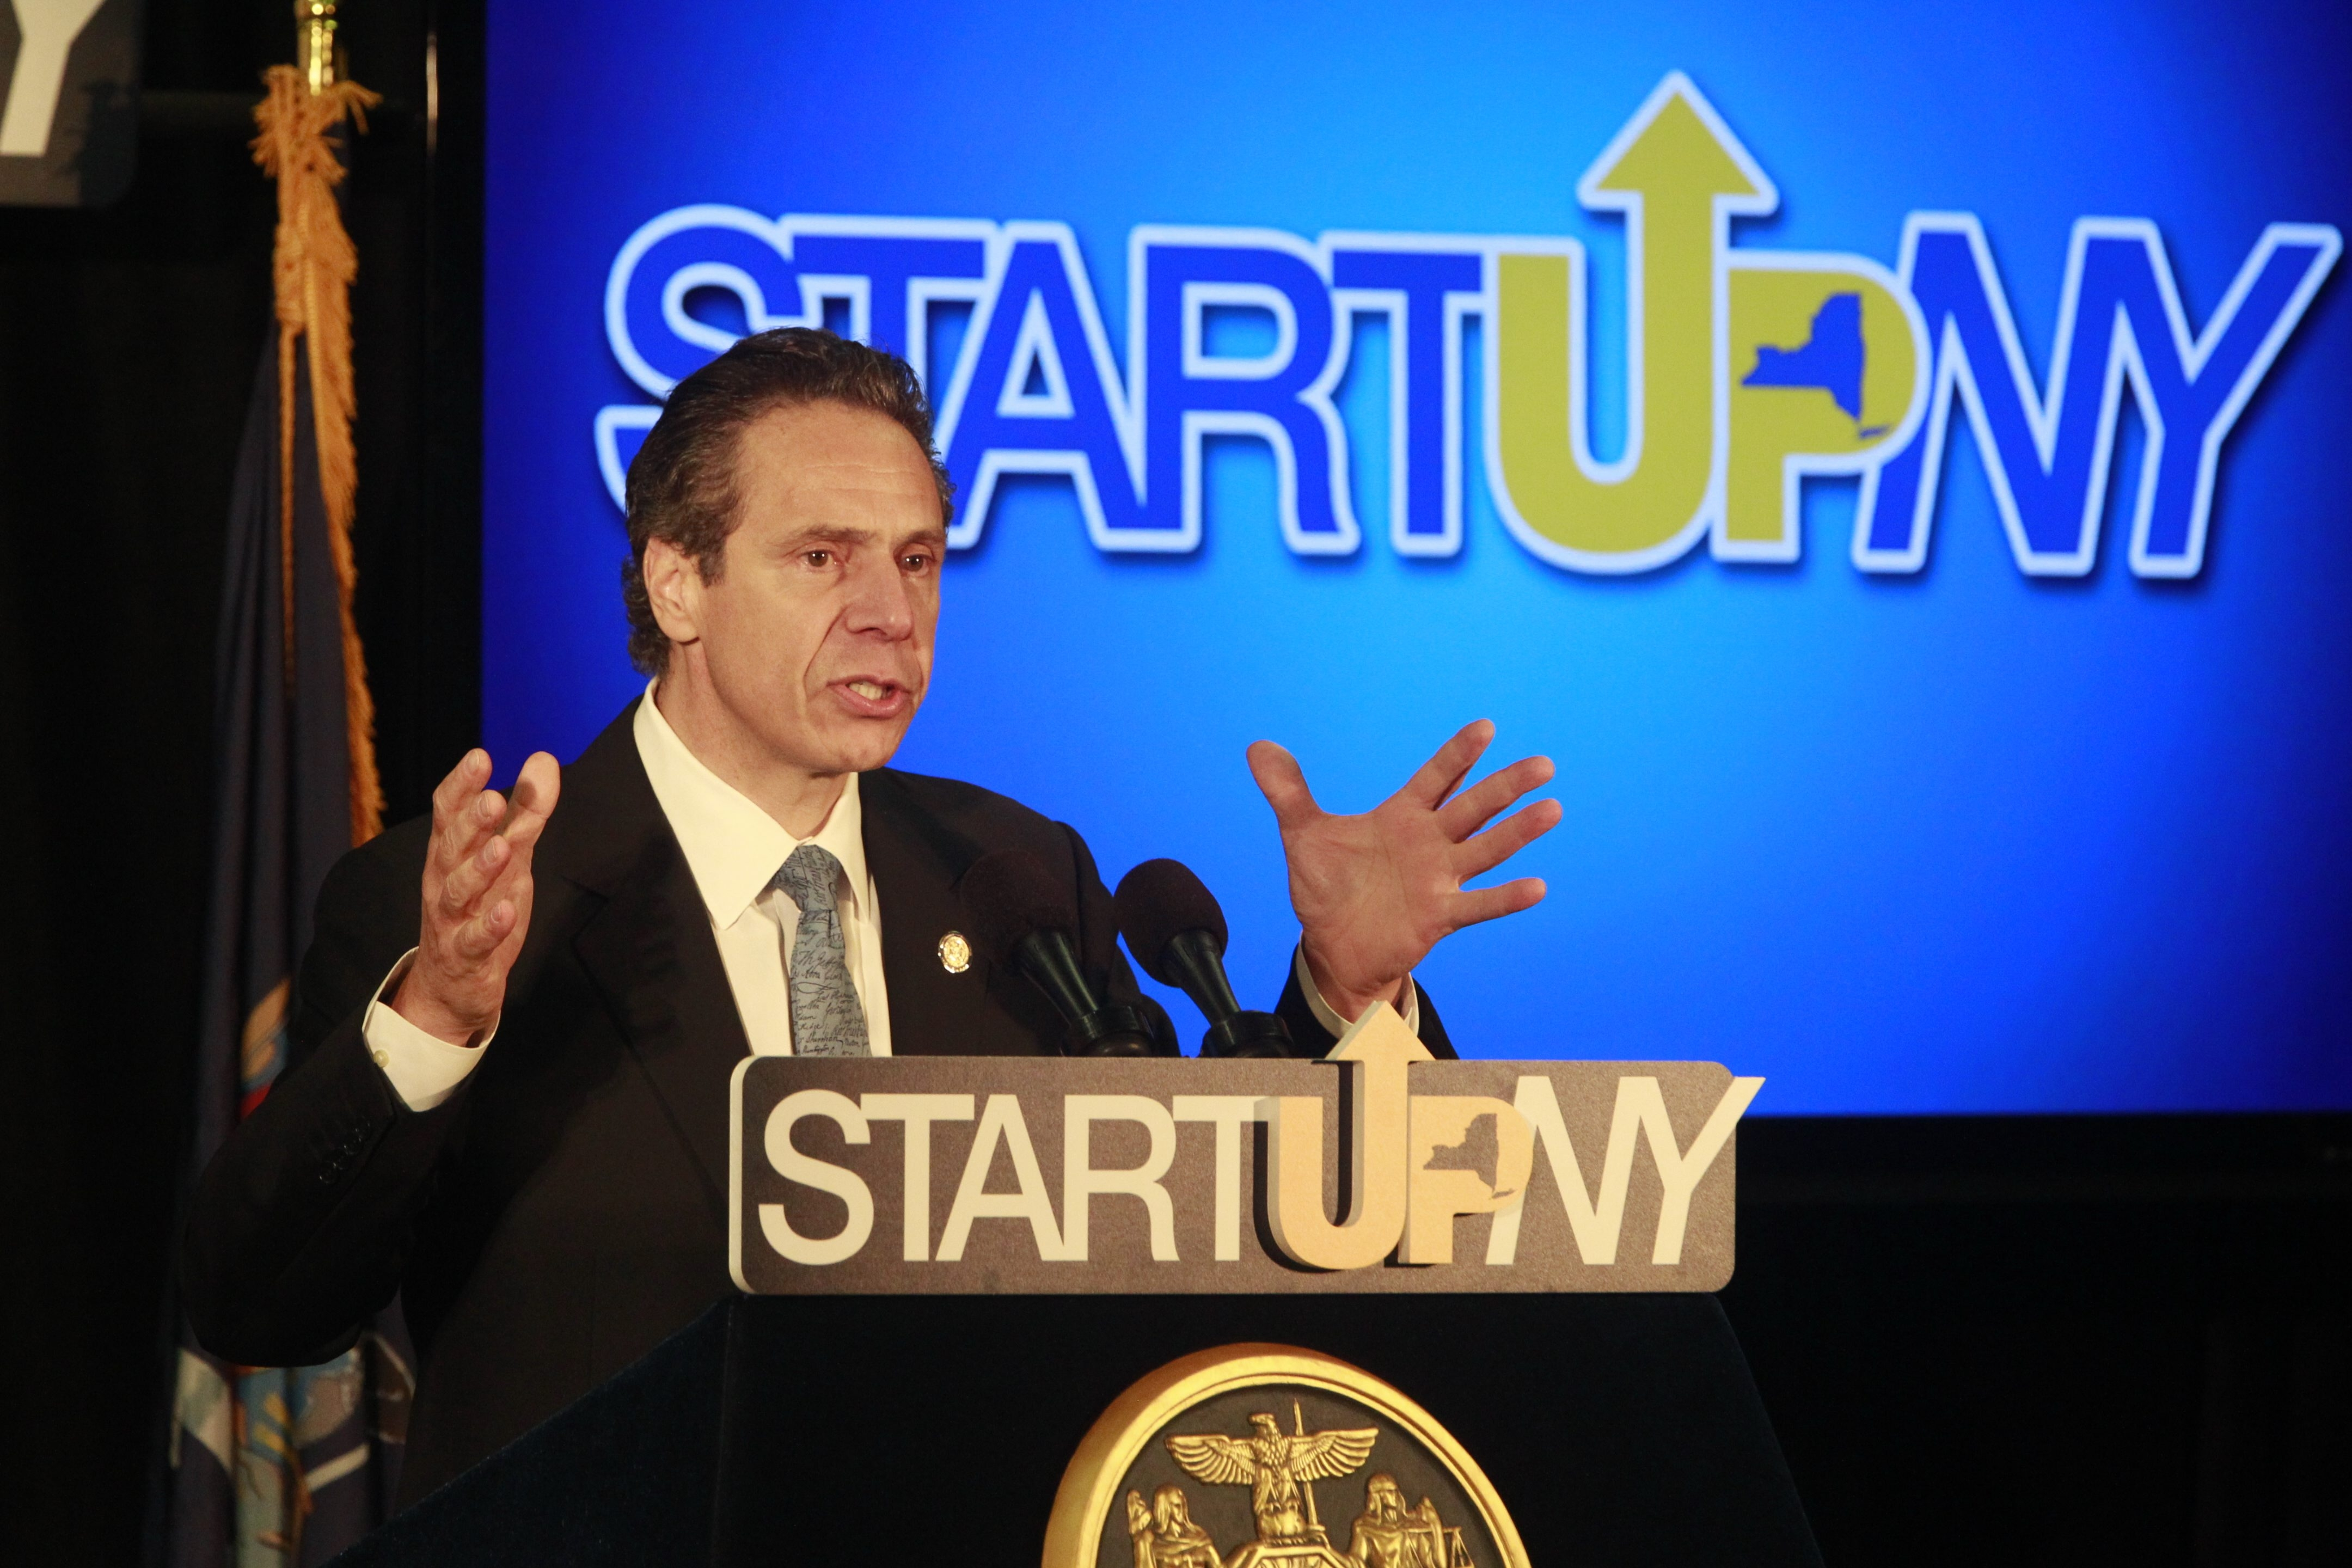 Gov. Andrew M. Cuomo launched Start-Up NY, one of many programs that will benefit the economy of Western New York.